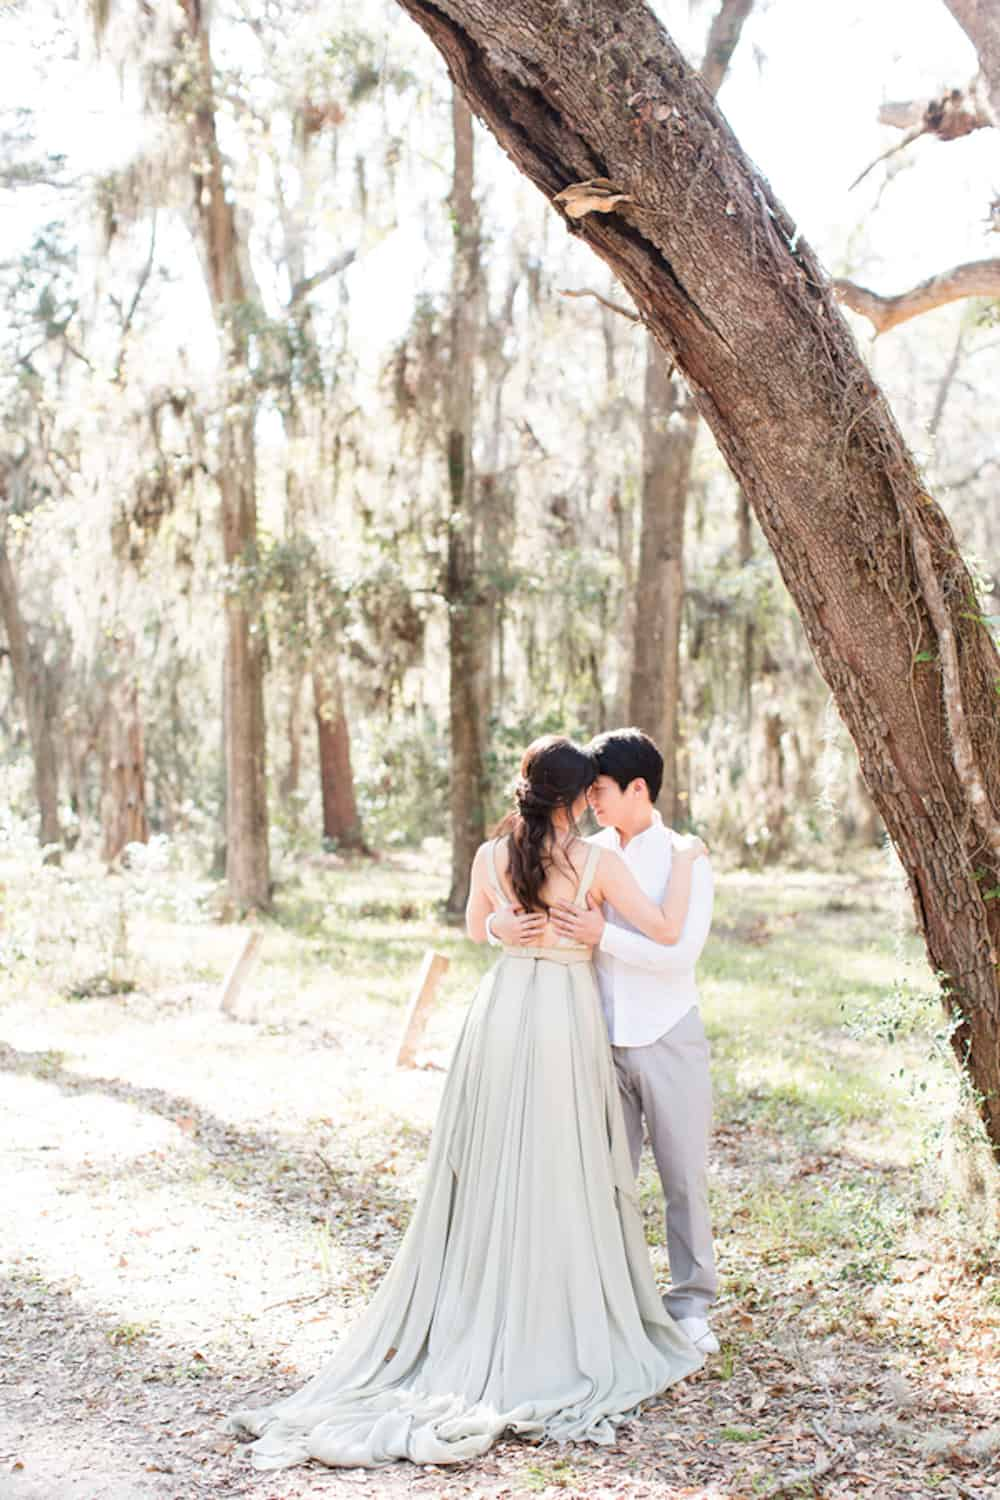 6 DanielleHarrisPhotography_Destinationweddingphotographer55sg_low